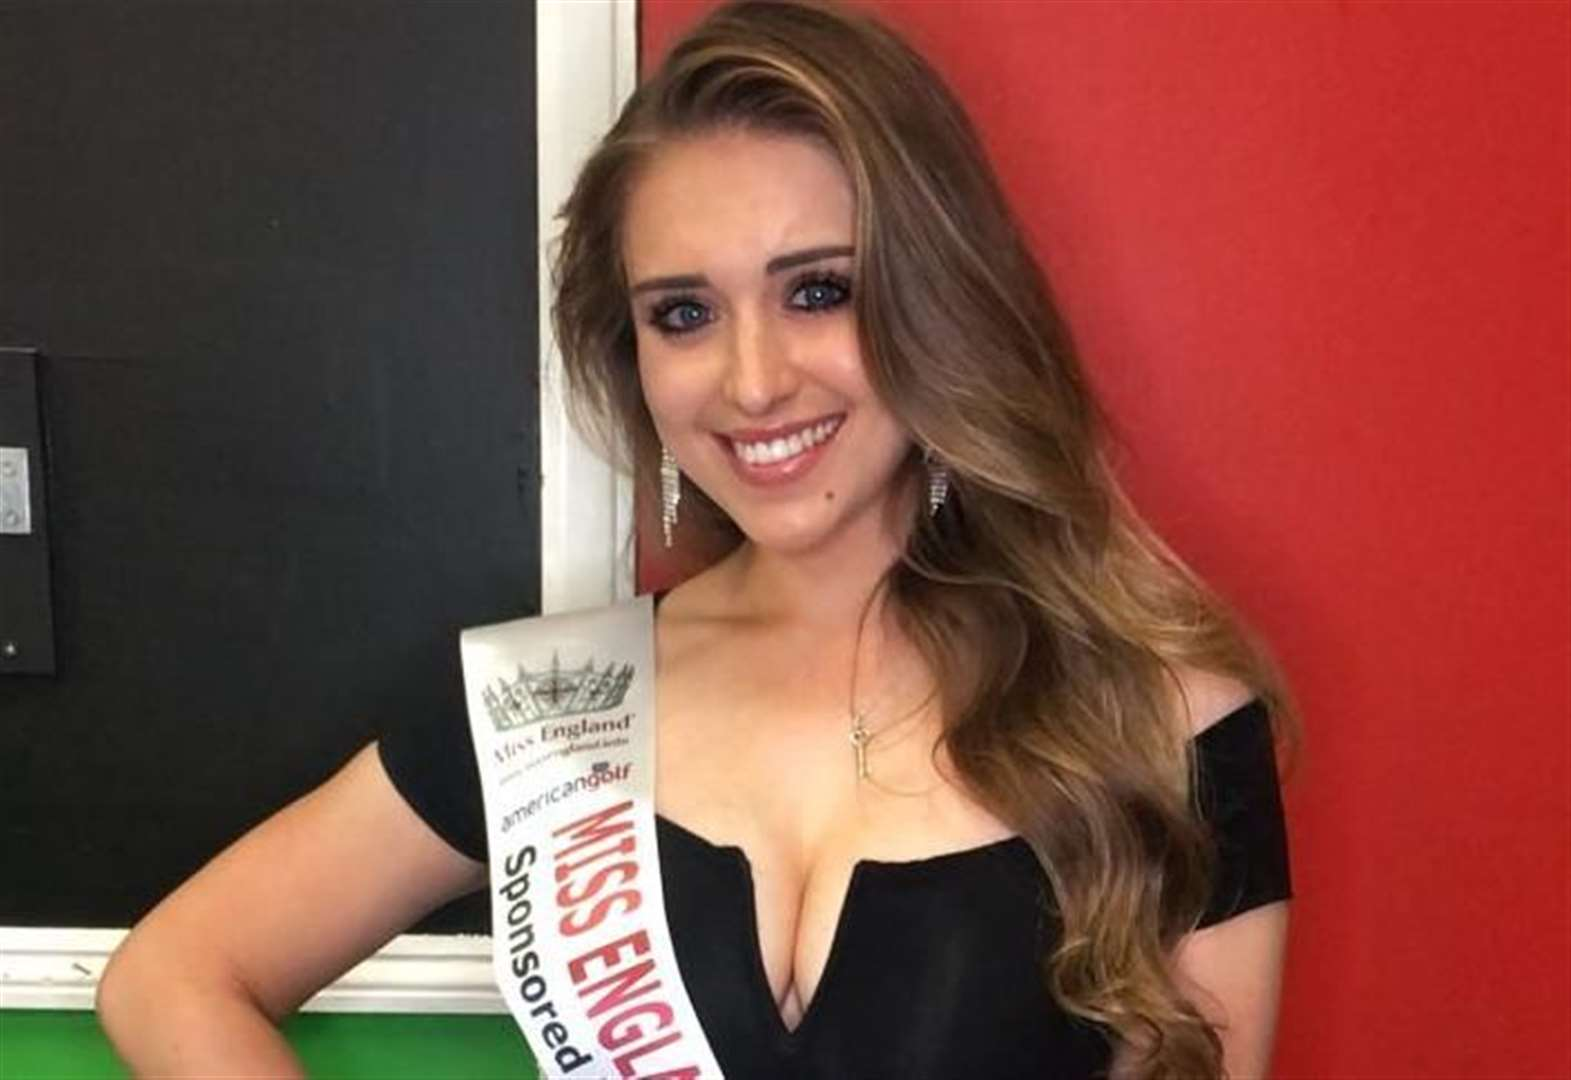 Miss England finalist caught up in pub fracas